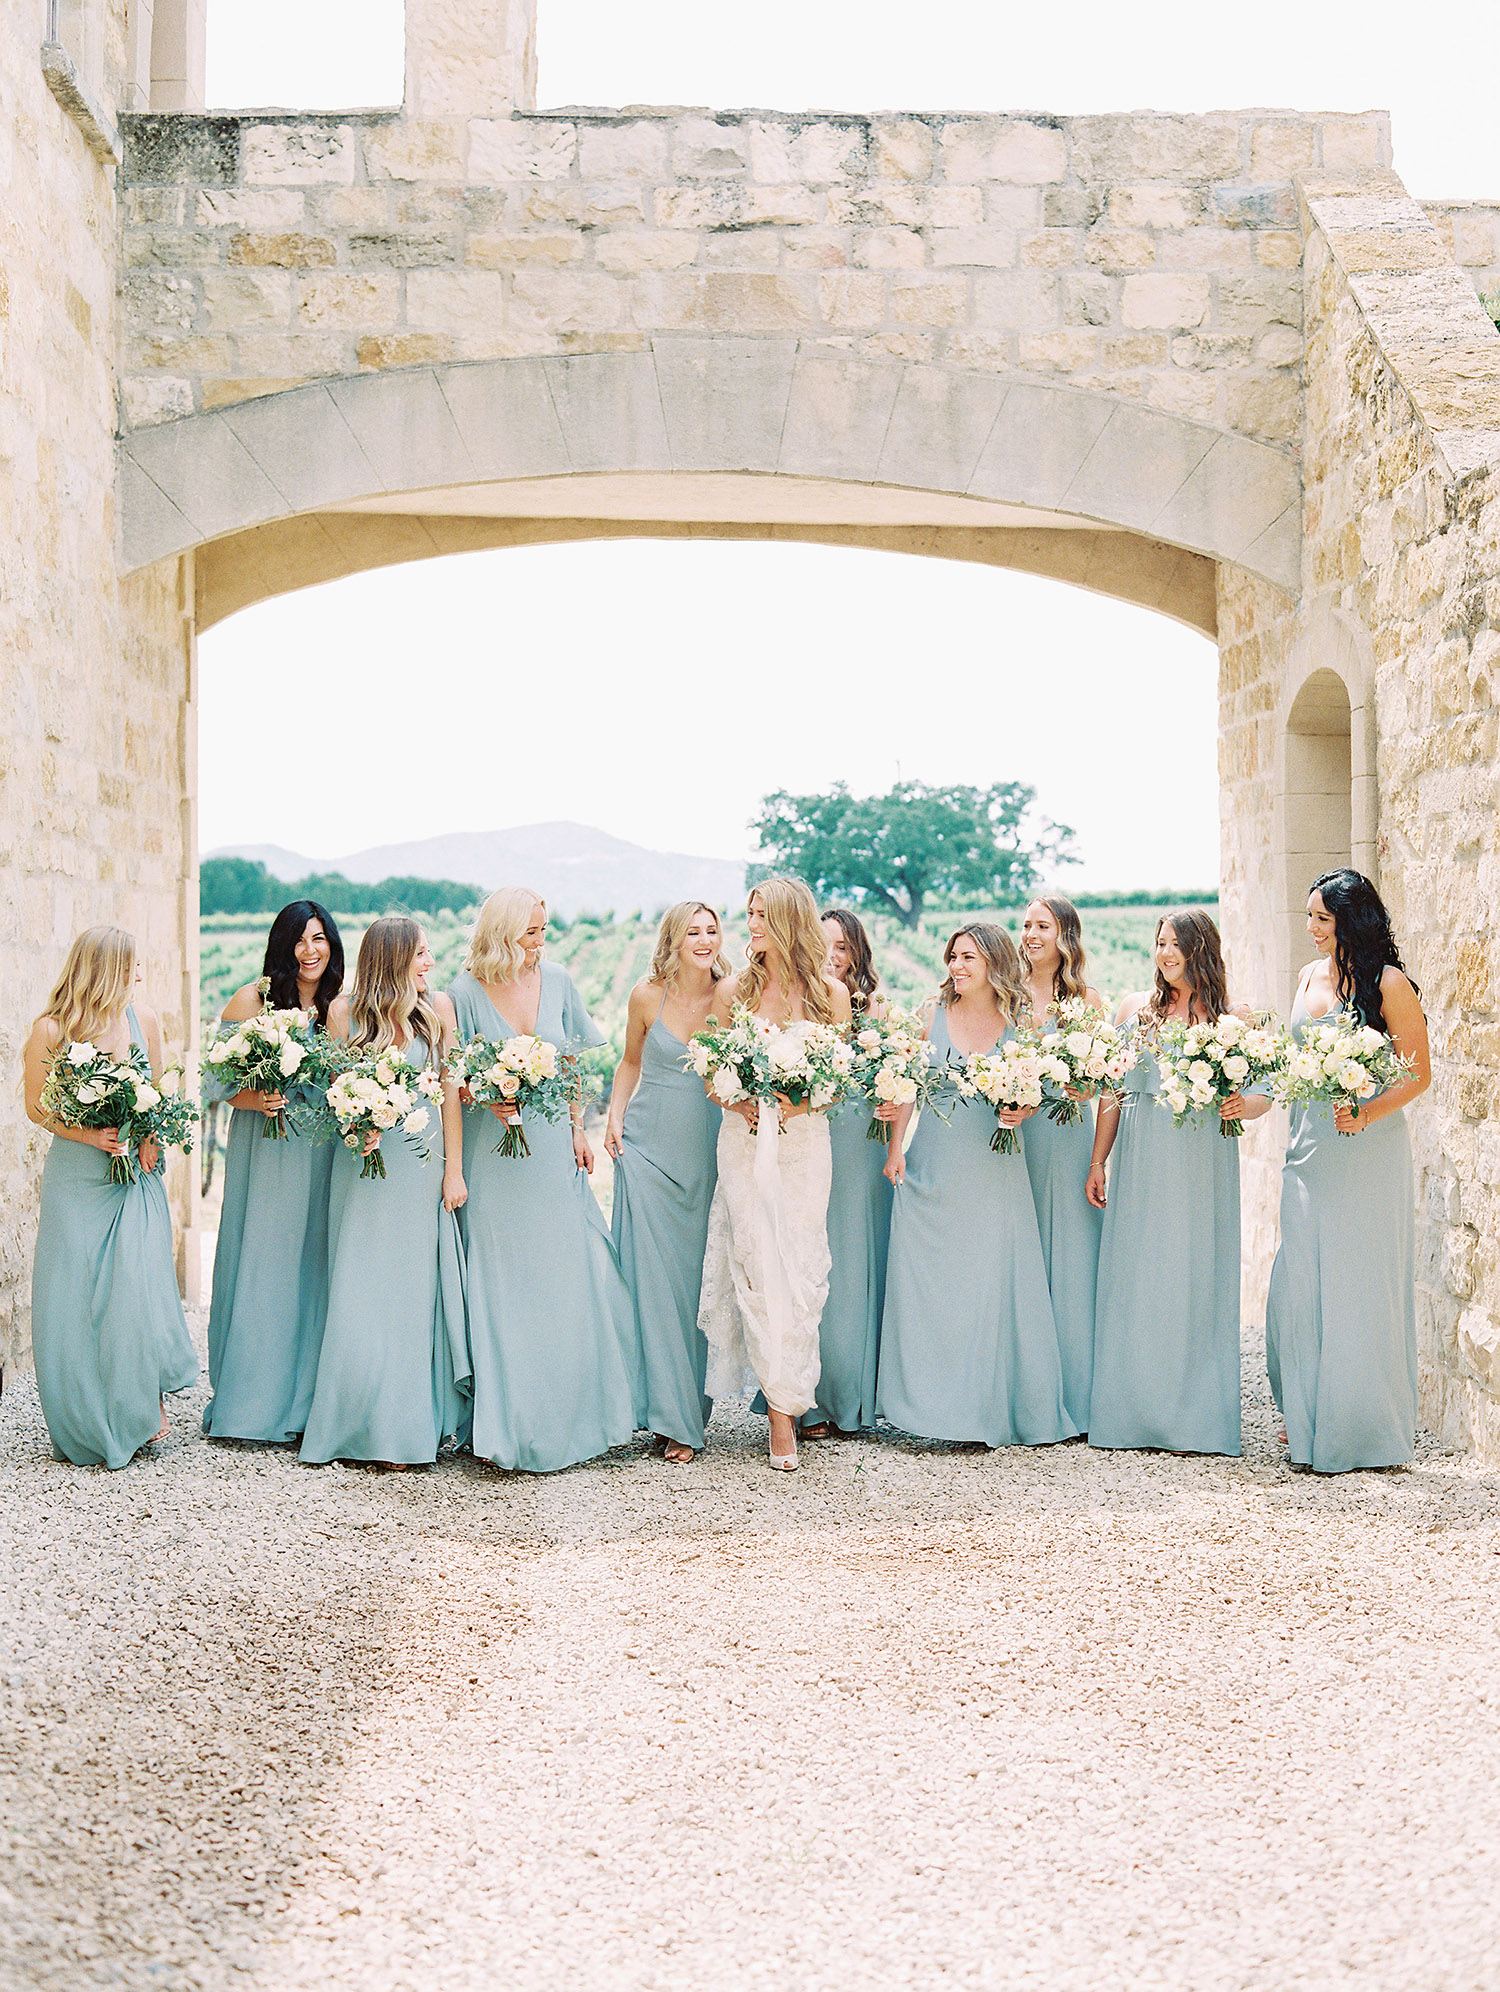 kati erik wedding bride bridesmaids in blue